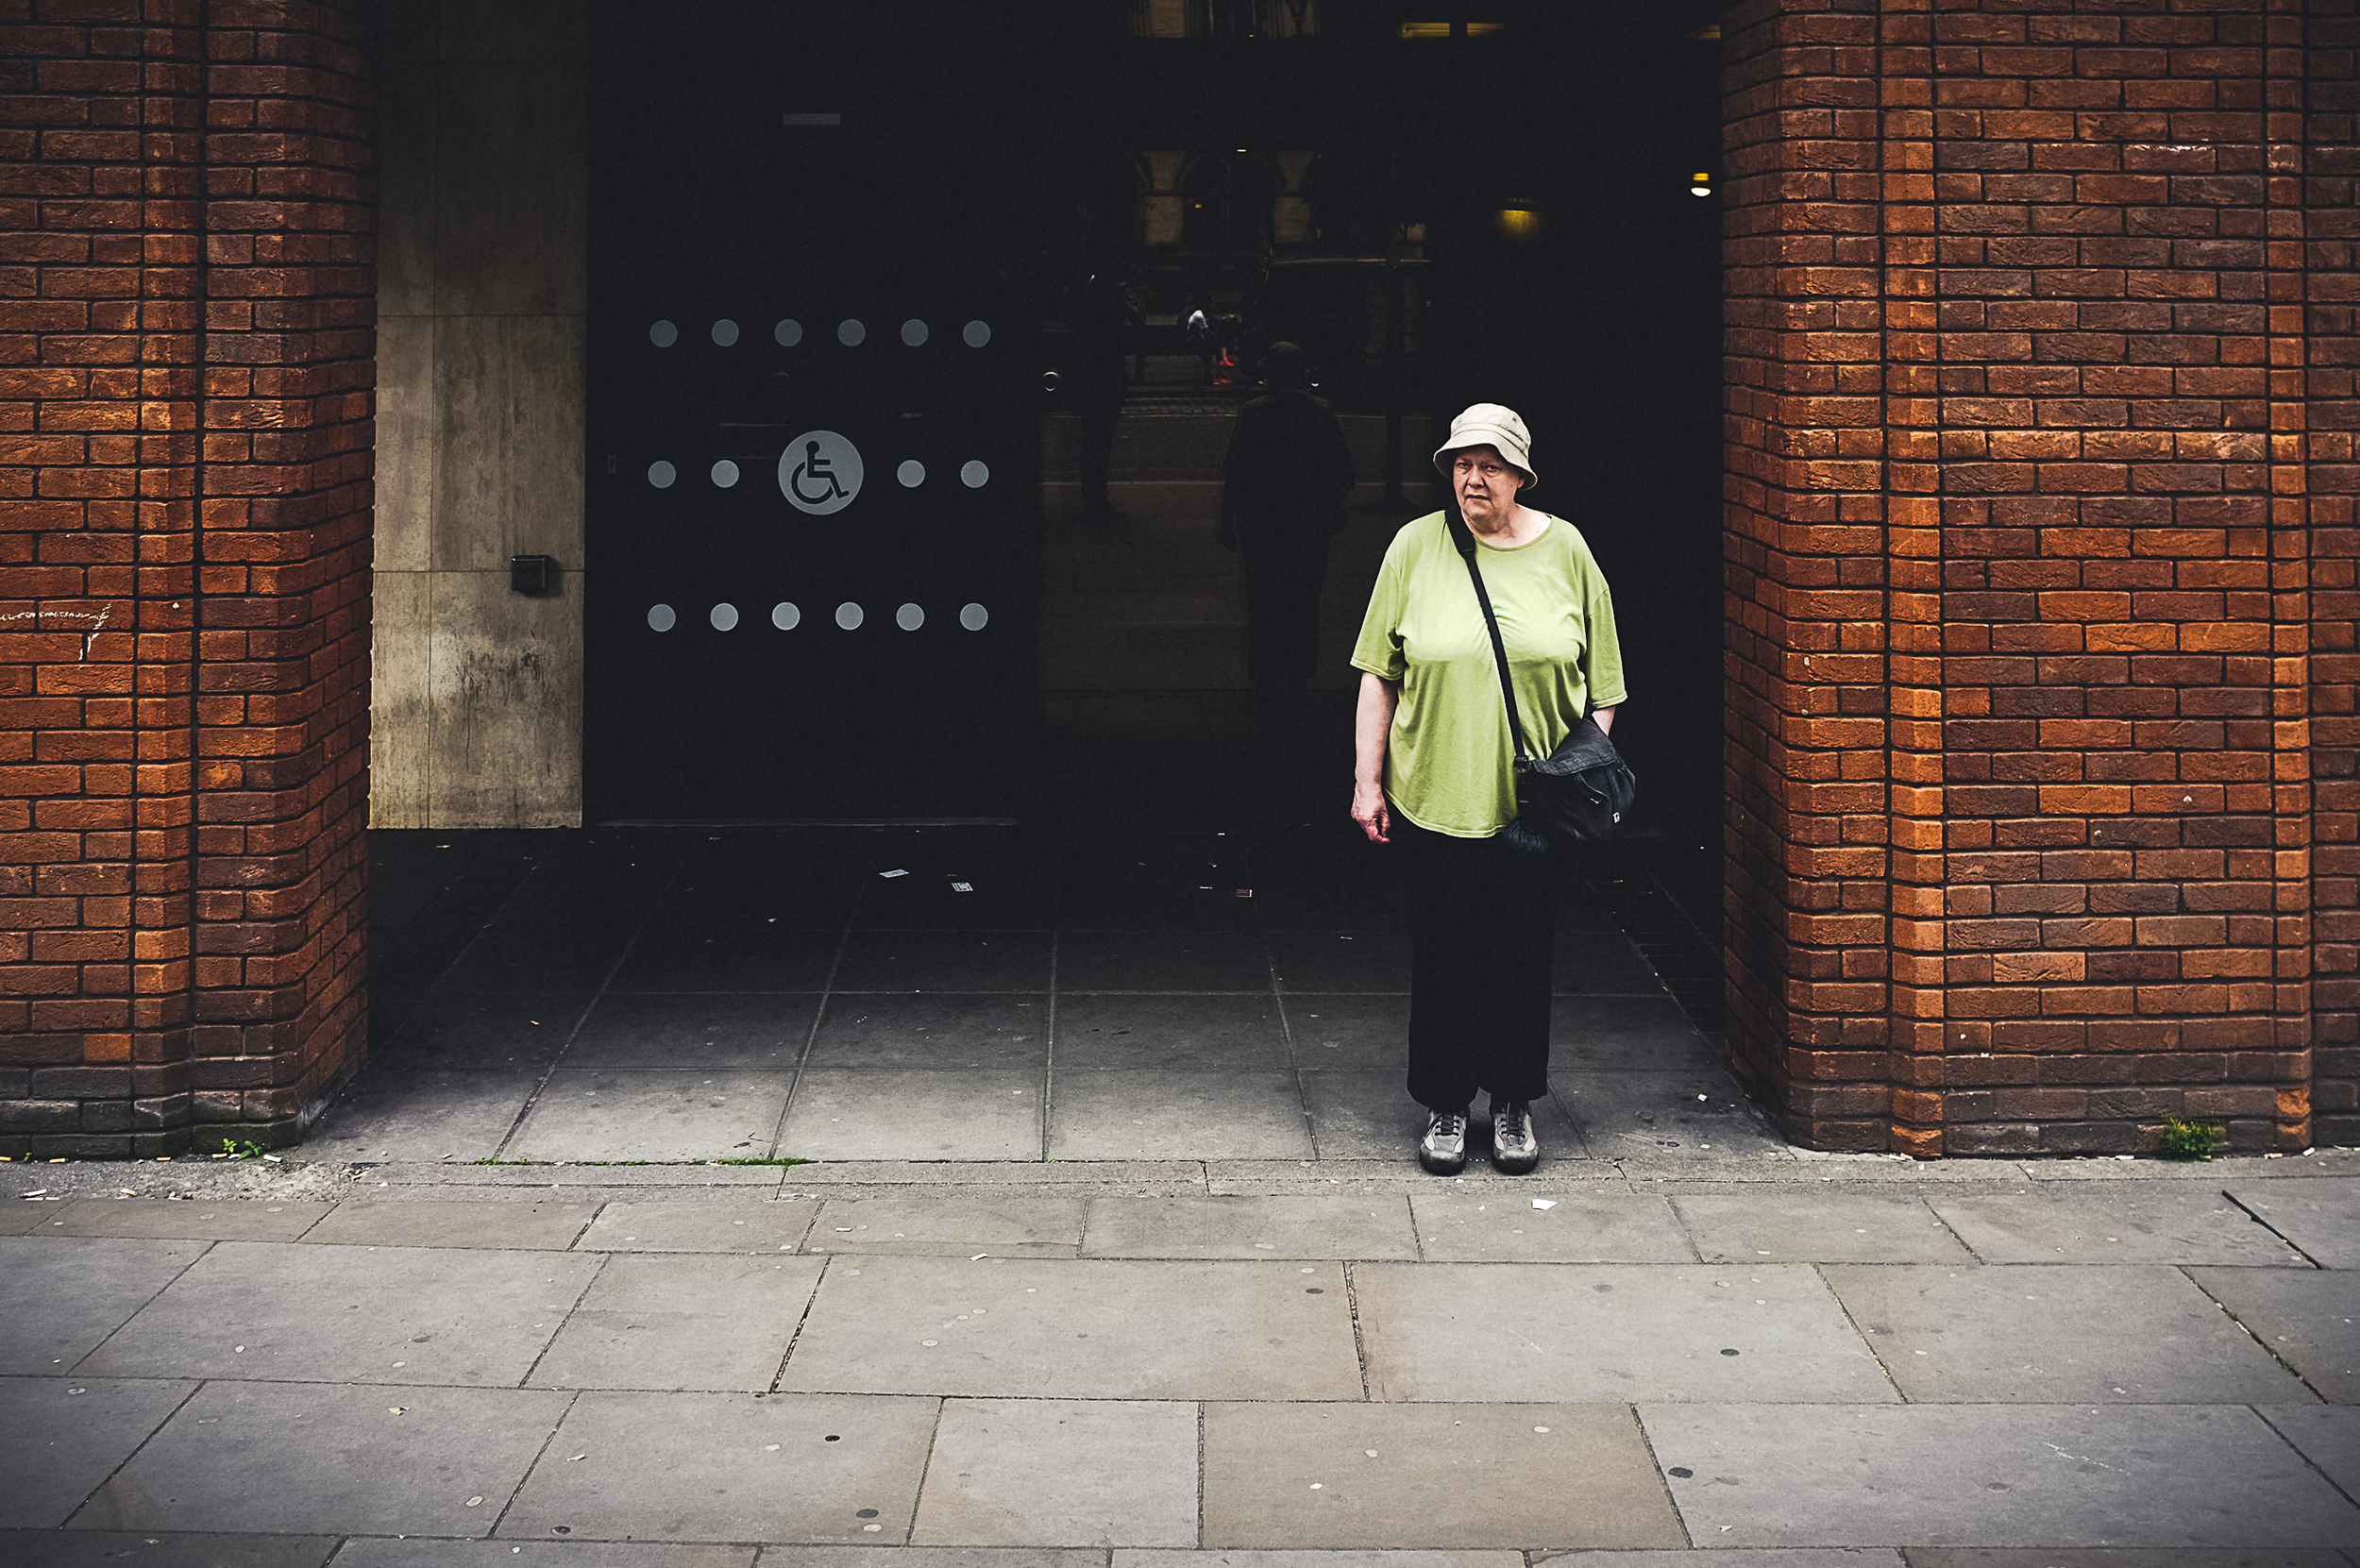 The Fuji X100 makes for one awesome, discreet street photography camera.